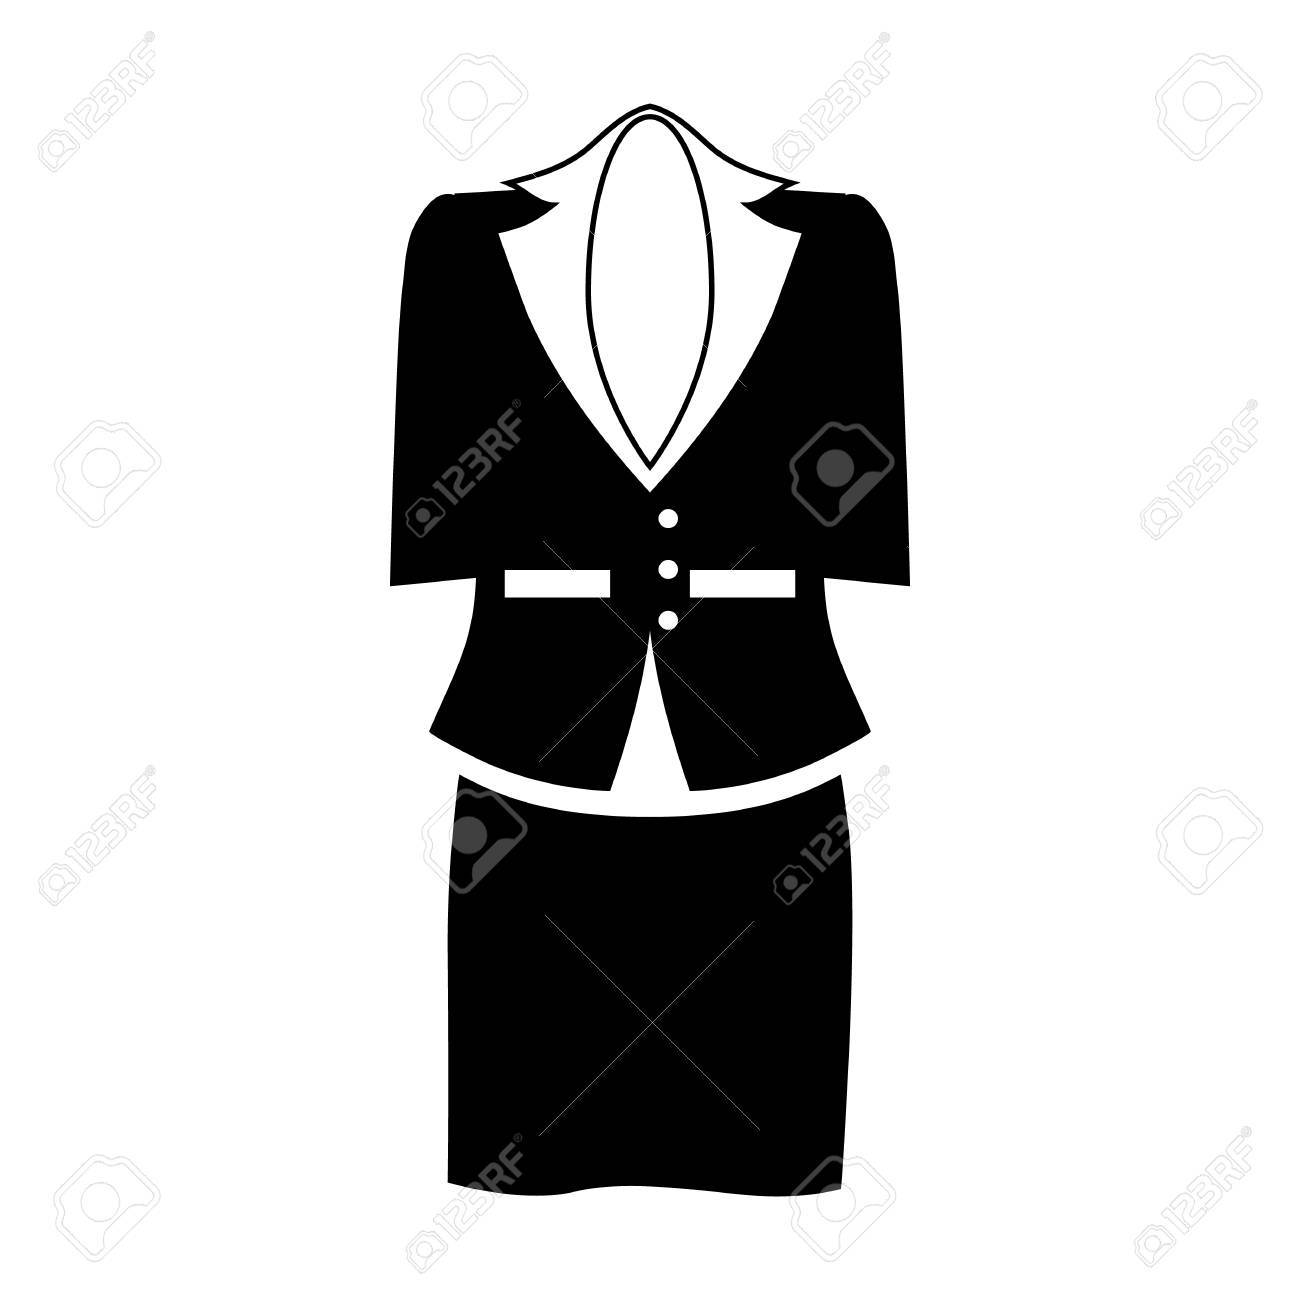 Female office suit icon in simple style isolated on white background female office suit icon in simple style isolated on white background clothing symbol vector illustration publicscrutiny Gallery